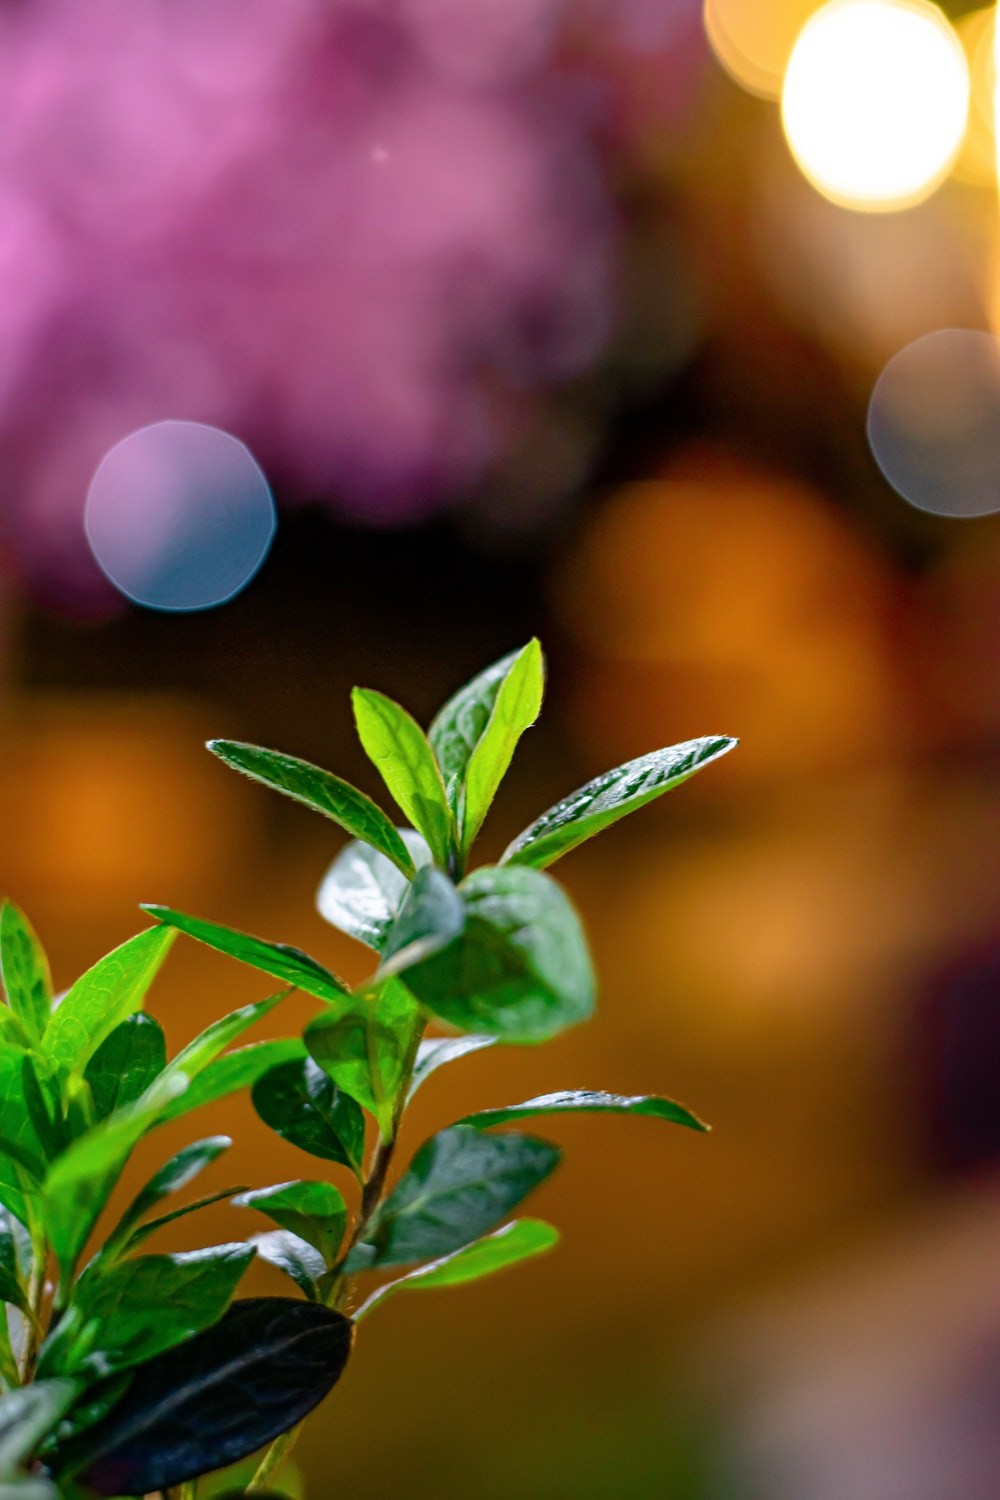 green plant with white flower